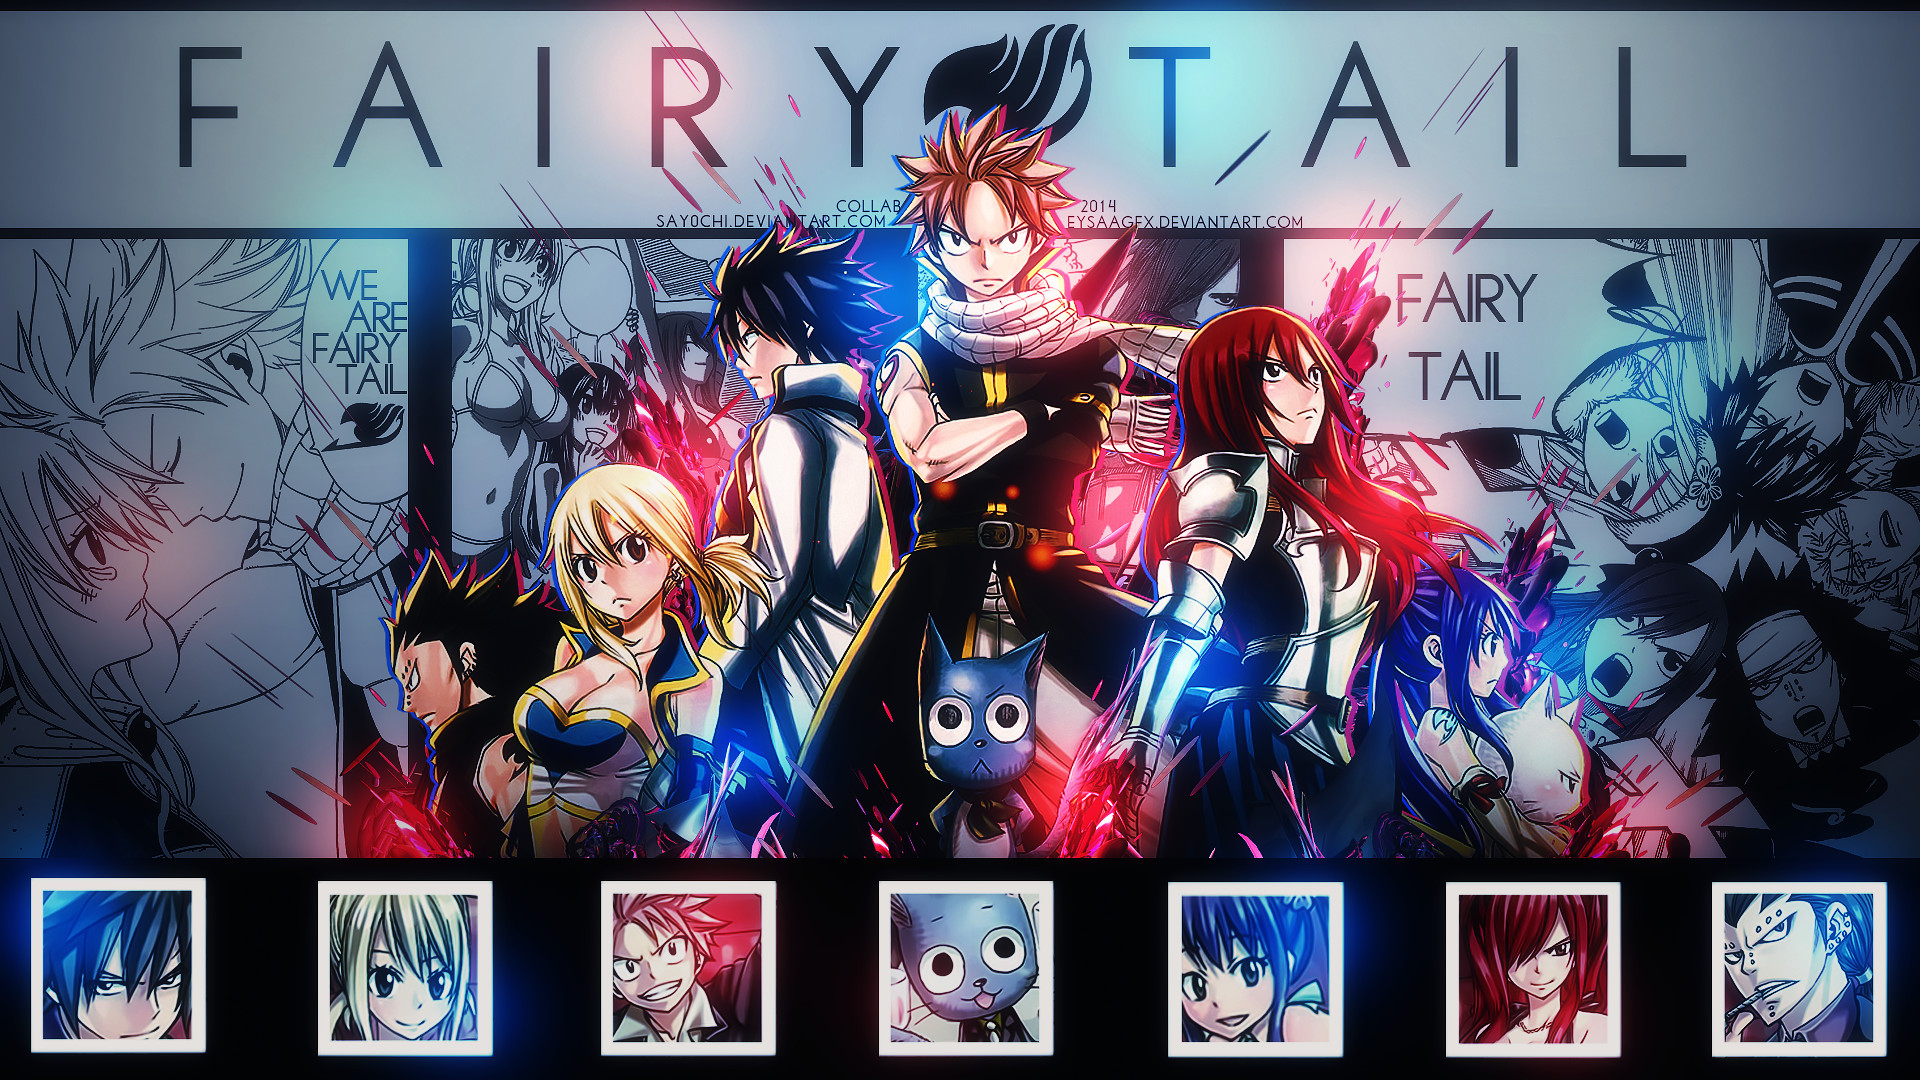 1920x1080 ... Fairy Tail Fantasia Wallpaper HD Desktop | Best Anime | Pinterest .